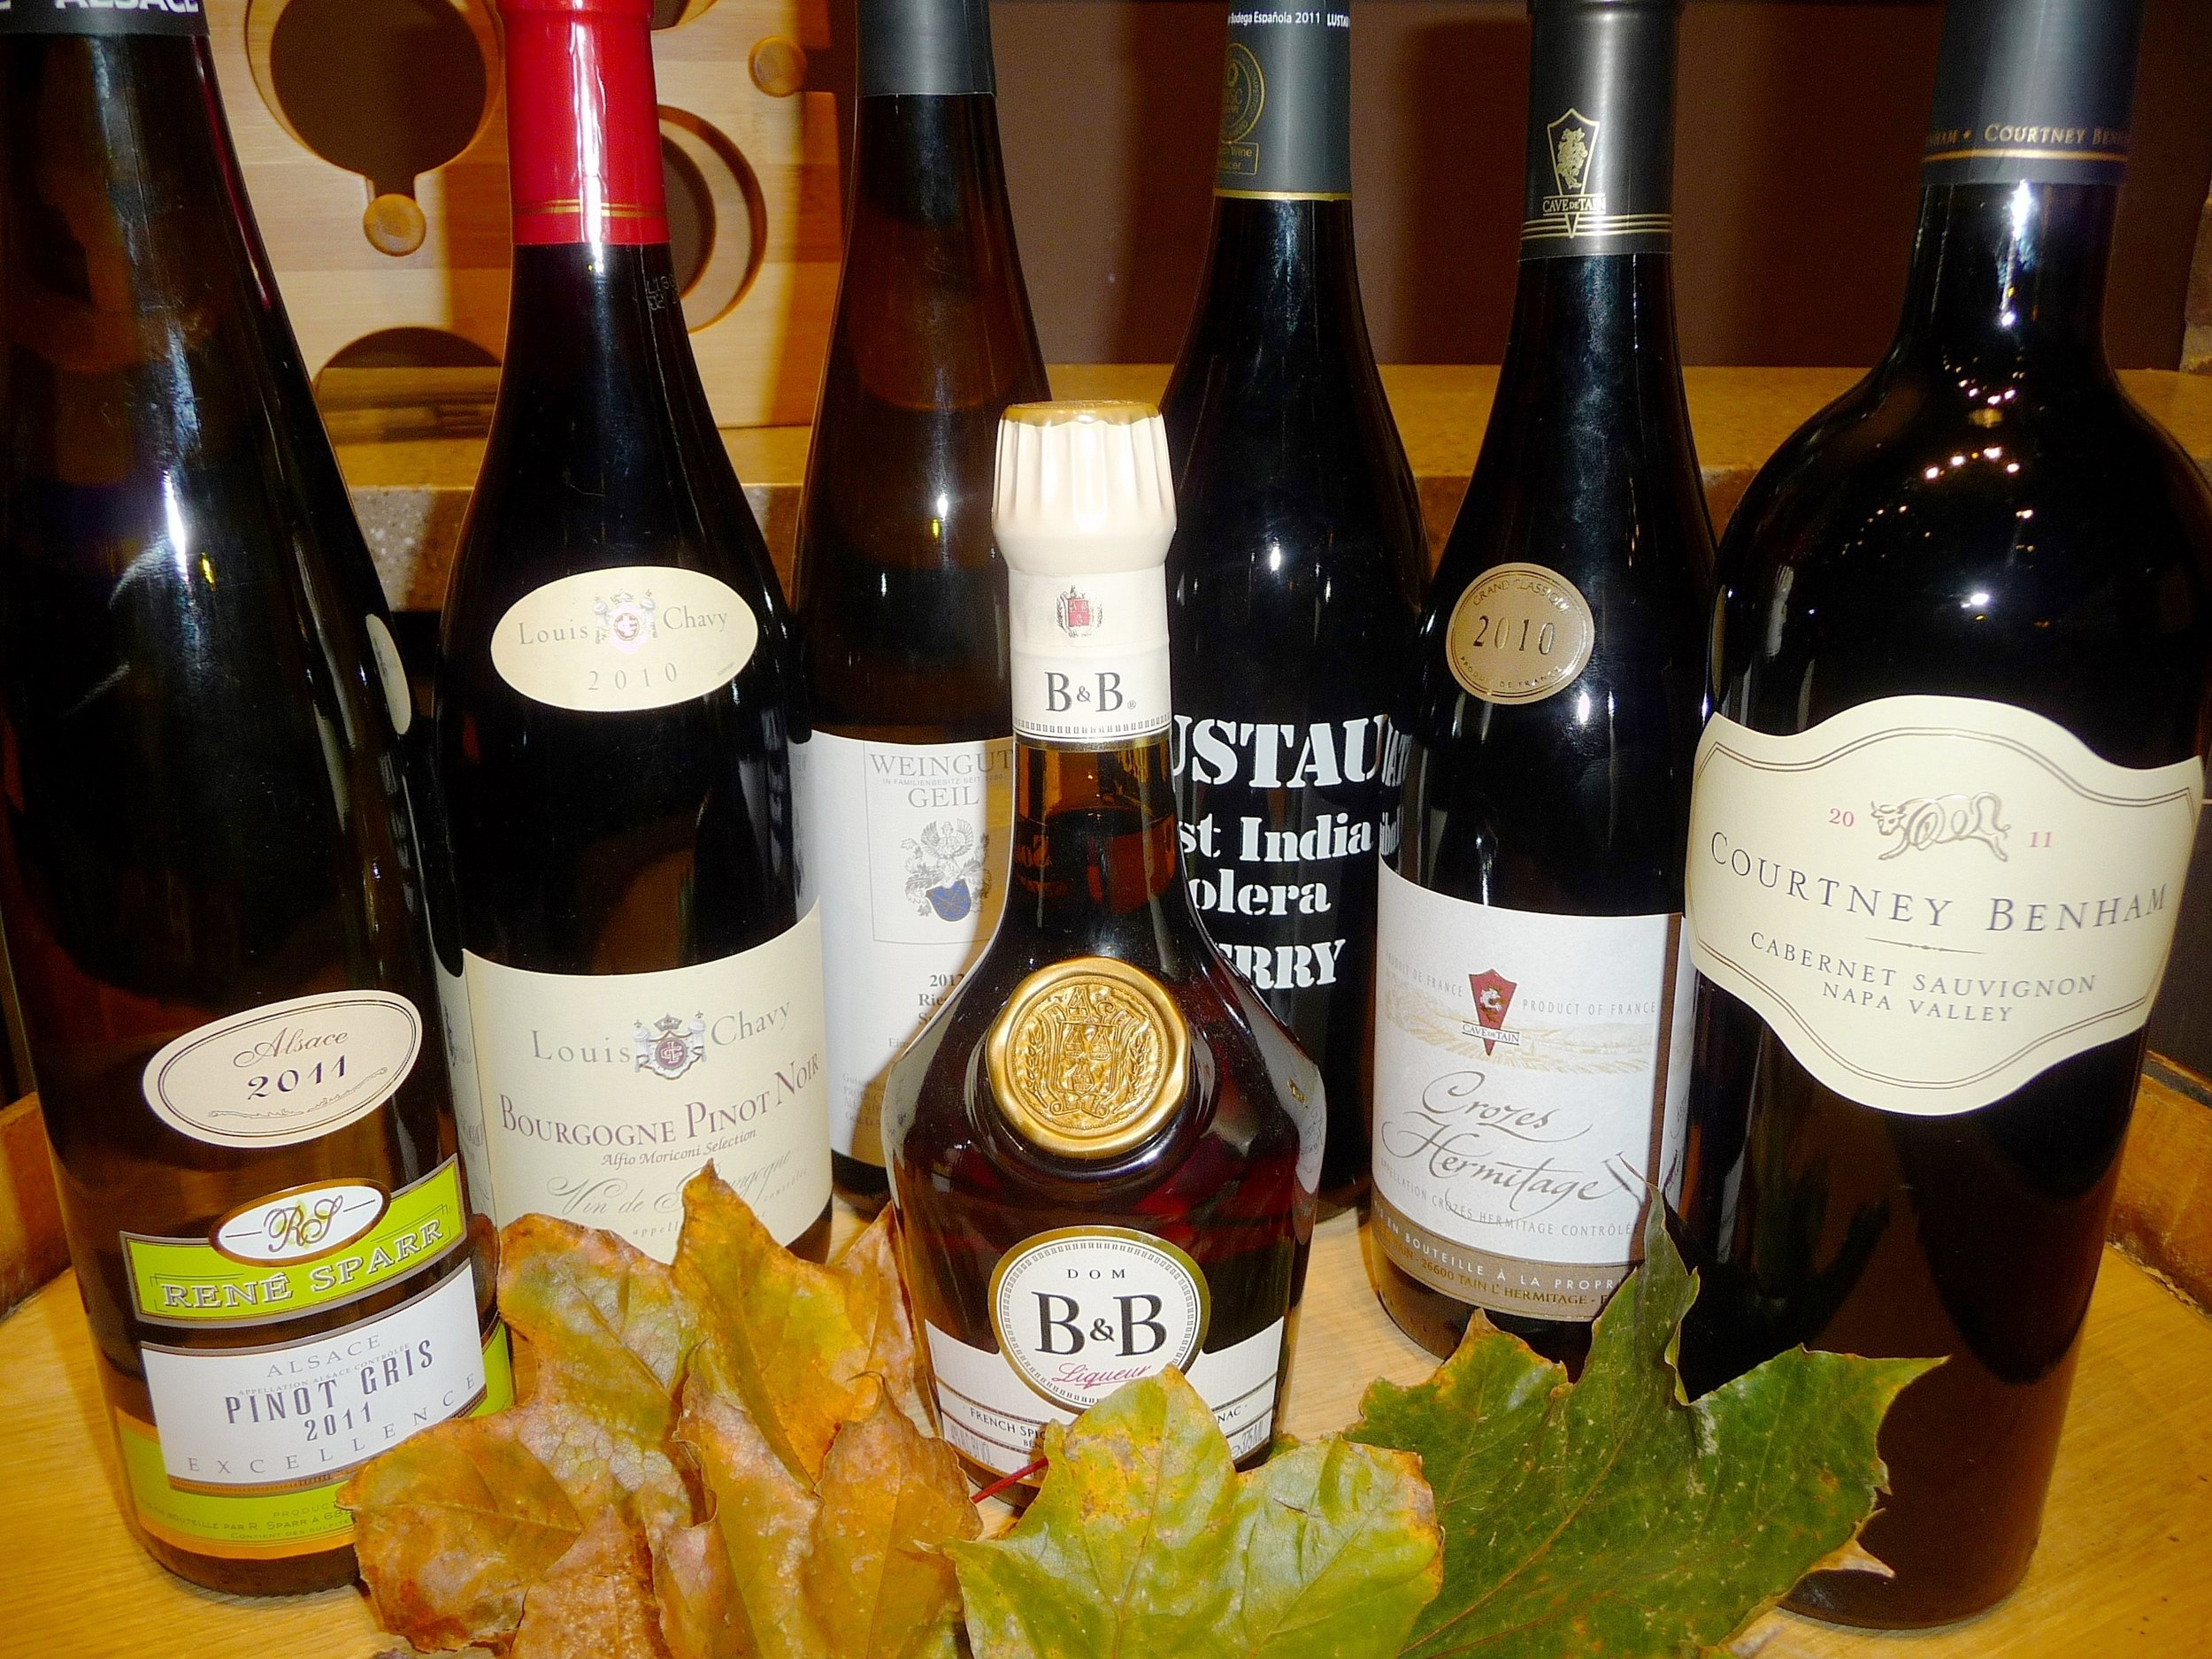 Old World wines complement the traditions of Thanksgiving with classic varietal styles